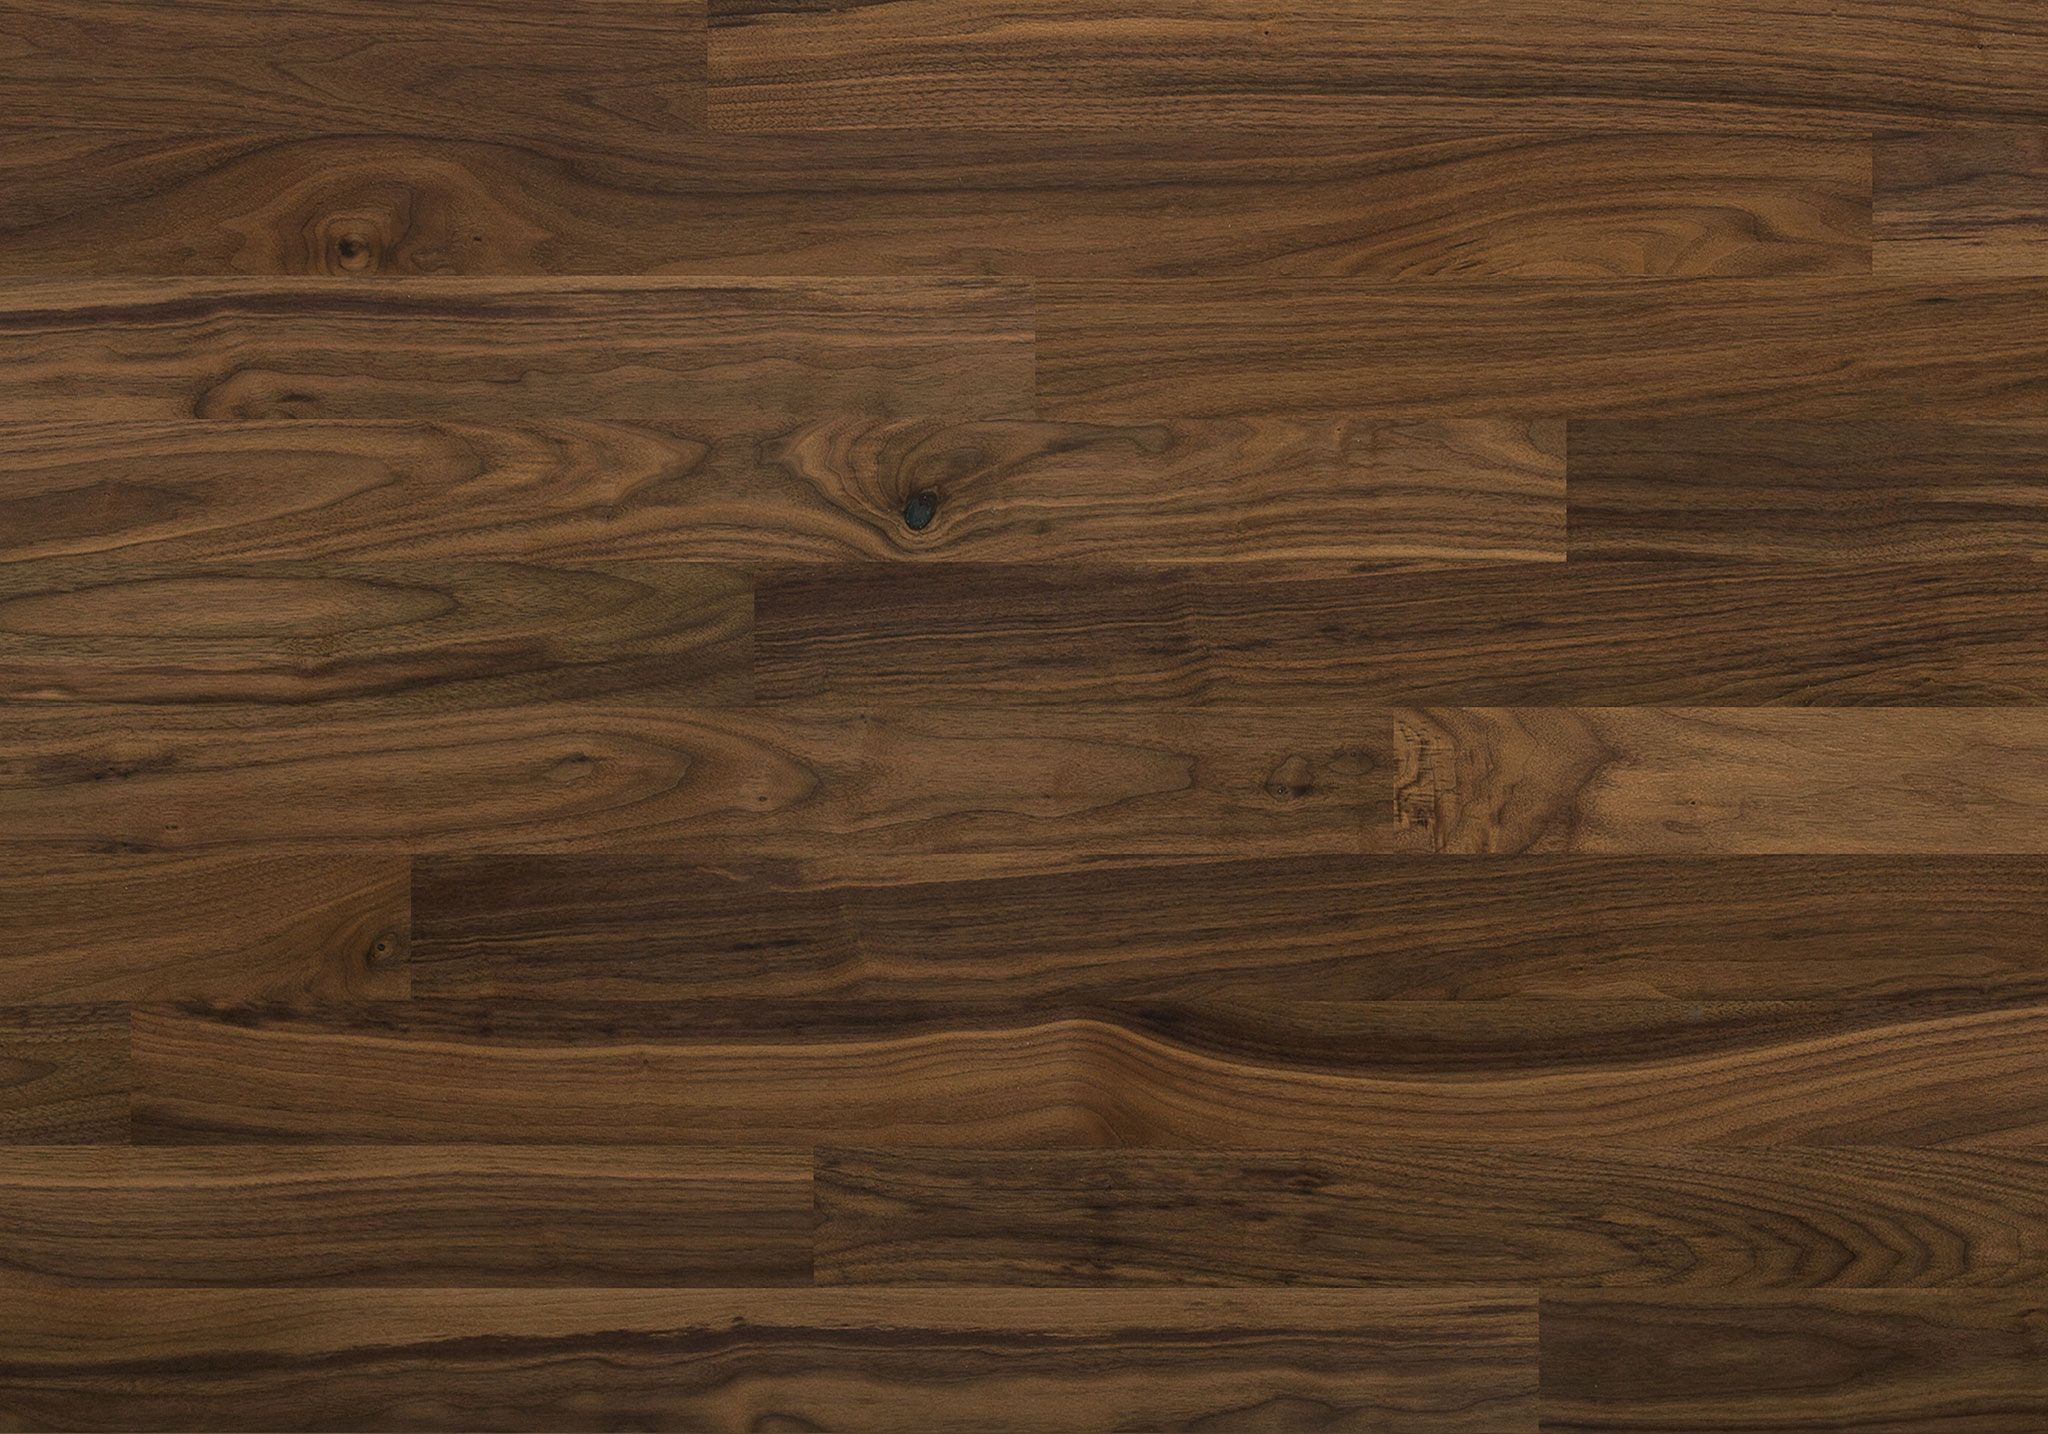 Natural Ambiance Black Walnut Exclusive Lauzon Hardwood